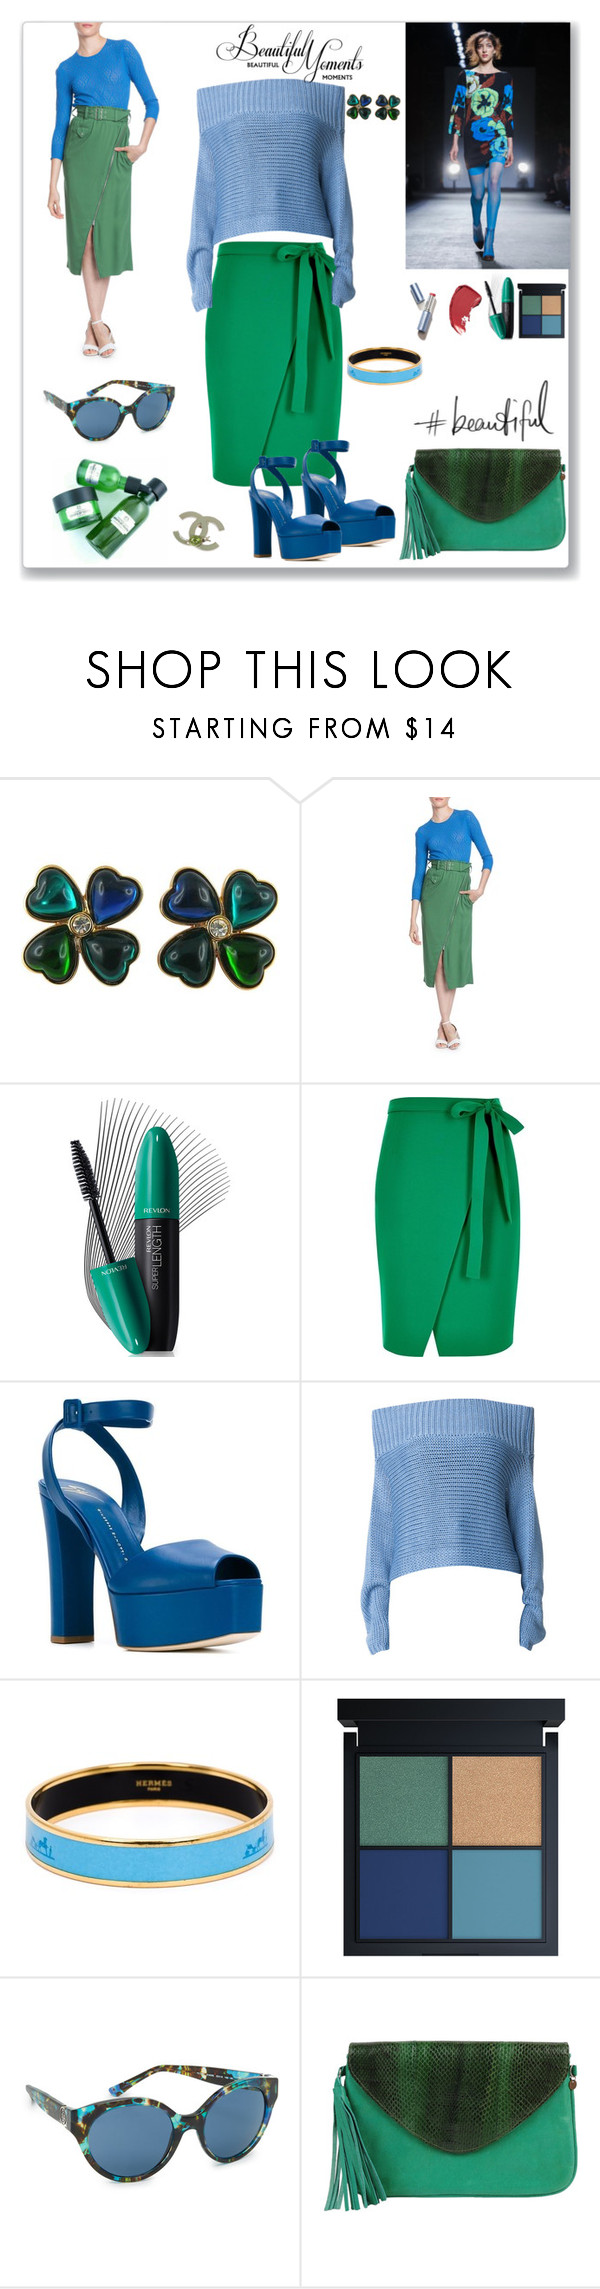 """""""Beautiful style"""" by ludmyla-stoyan ❤ liked on Polyvore featuring Yves Saint Laurent, Tracy Reese, Revlon, River Island, Giuseppe Zanotti, TIBI, Hermès, Tory Burch, Cocobelle and Chanel"""